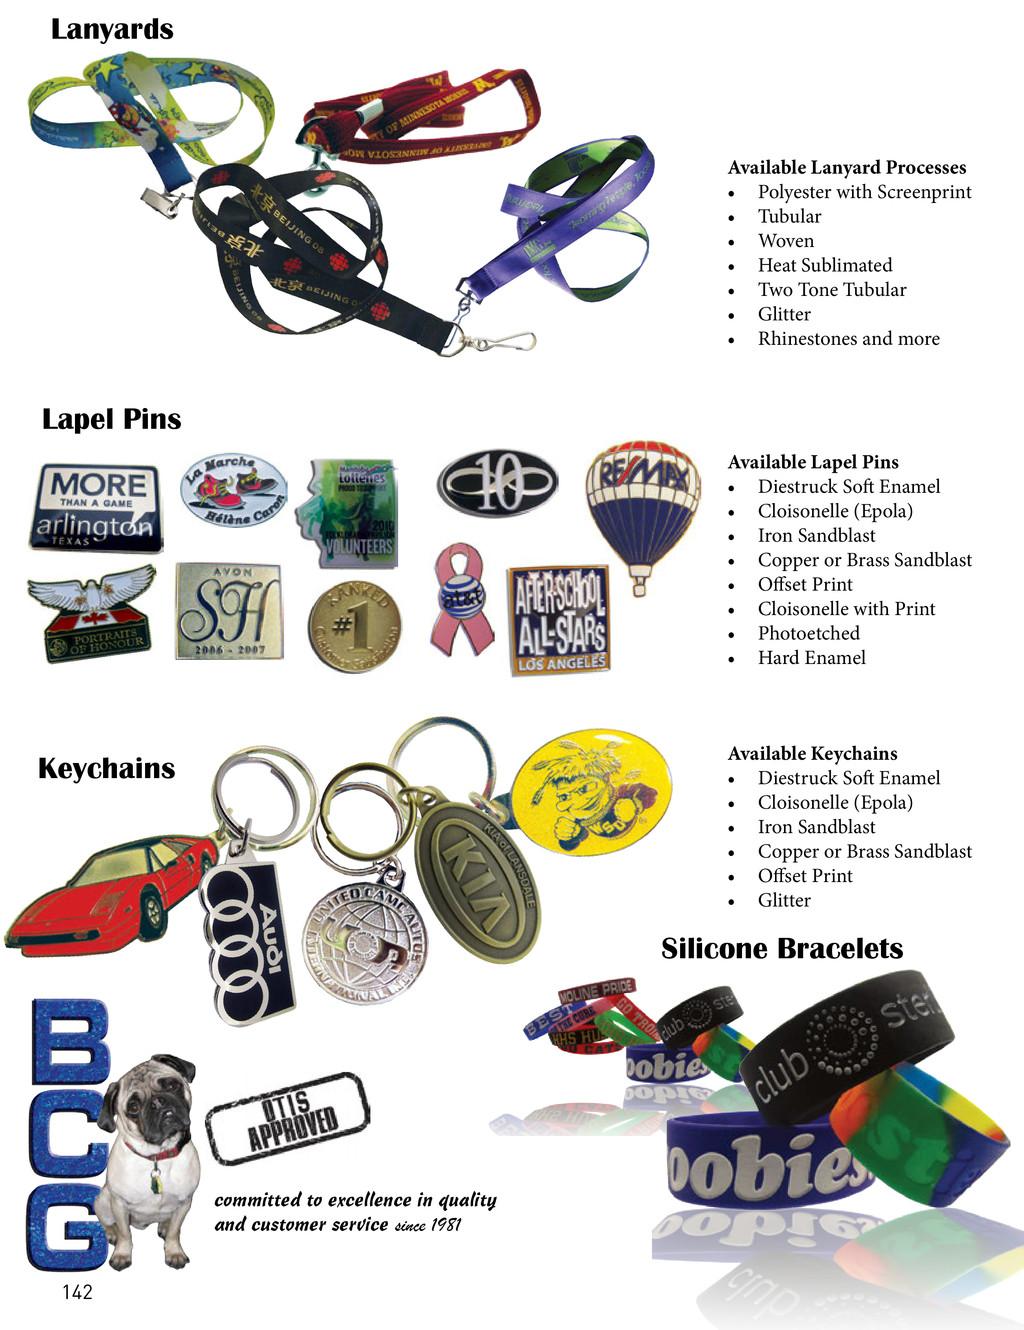 Lanyards committed to excellence in quality and...